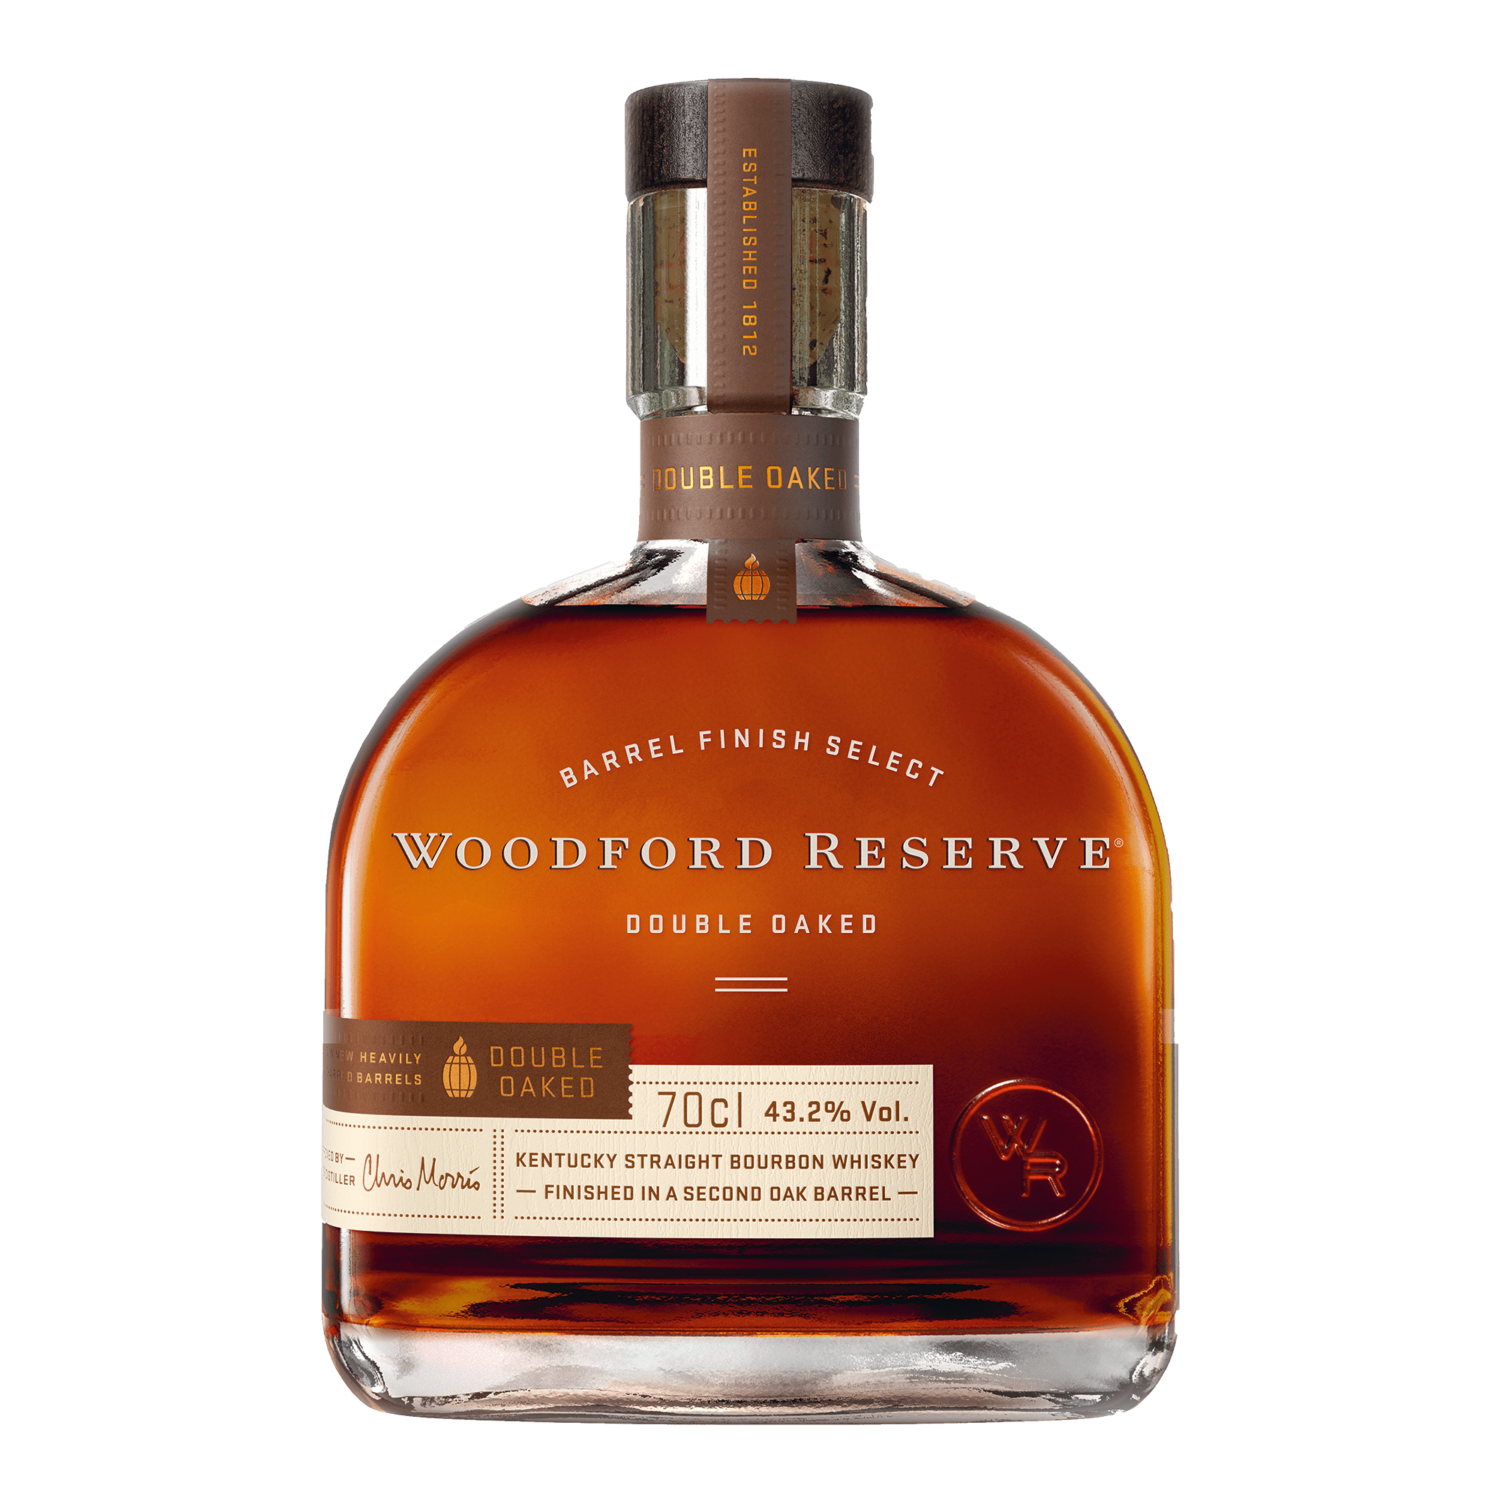 Woodford Reserve double oaked - 70cl